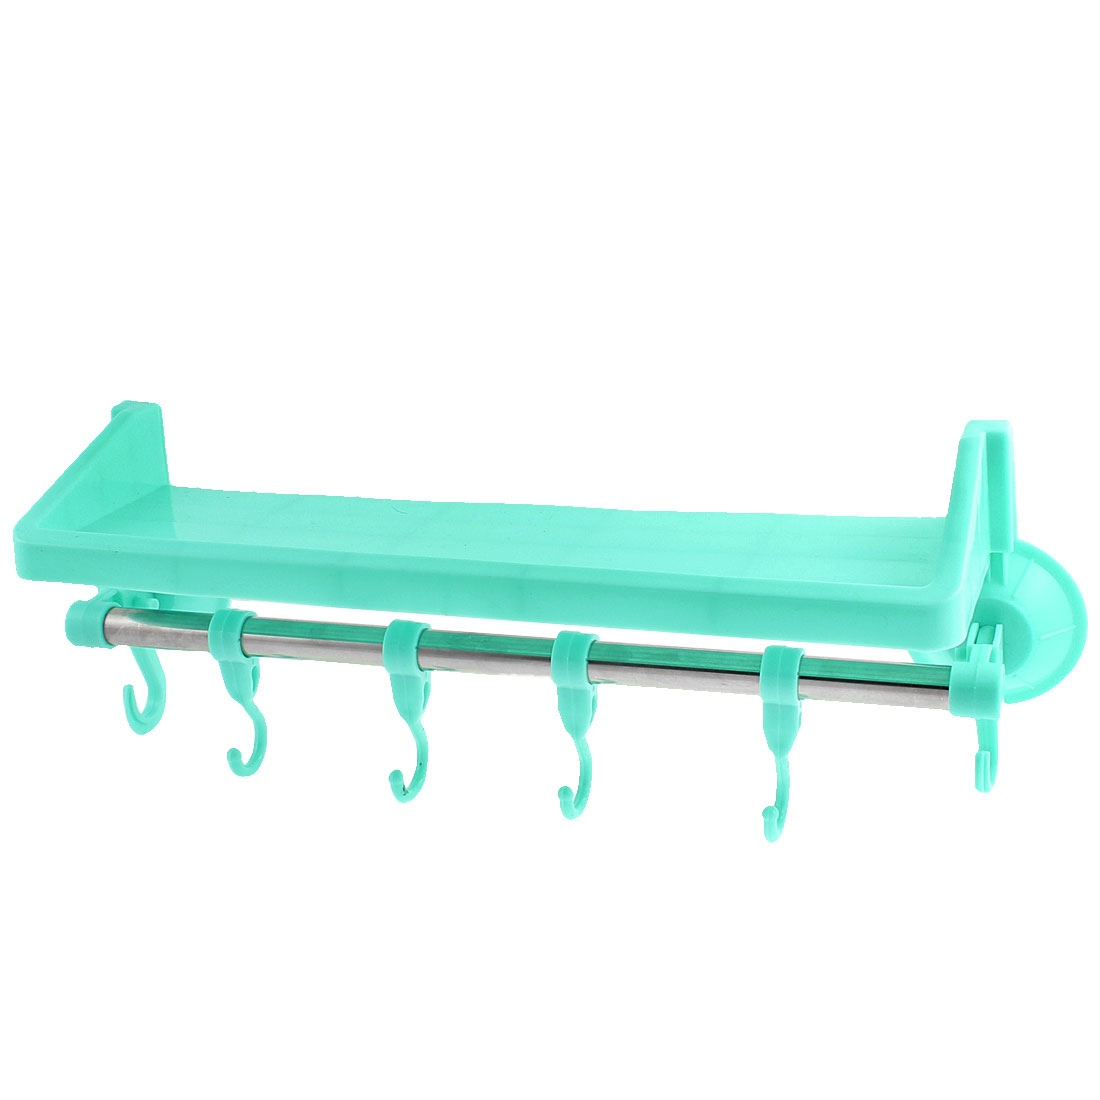 Kitchen Bathroom Plastic Wall Mounted Suction Cup Storage Holder Rack Light Blue